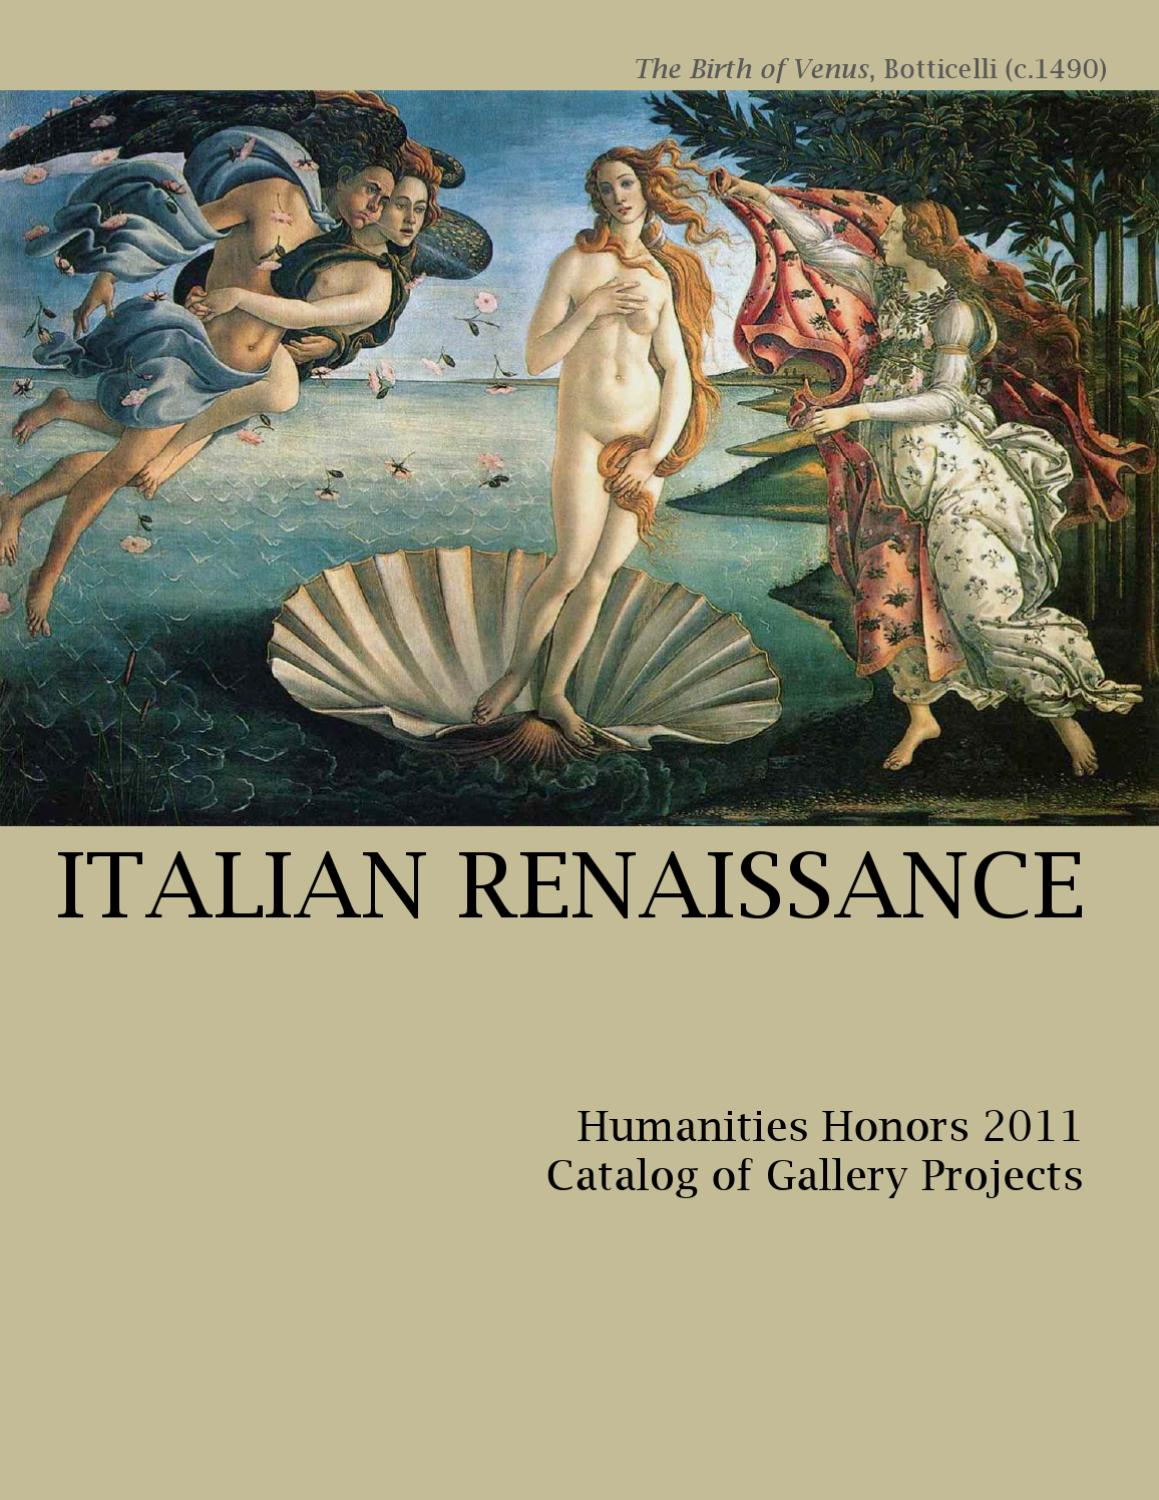 italian renaissance essay Renaissance essays | see the list of sample papers for free - bla bla writing.